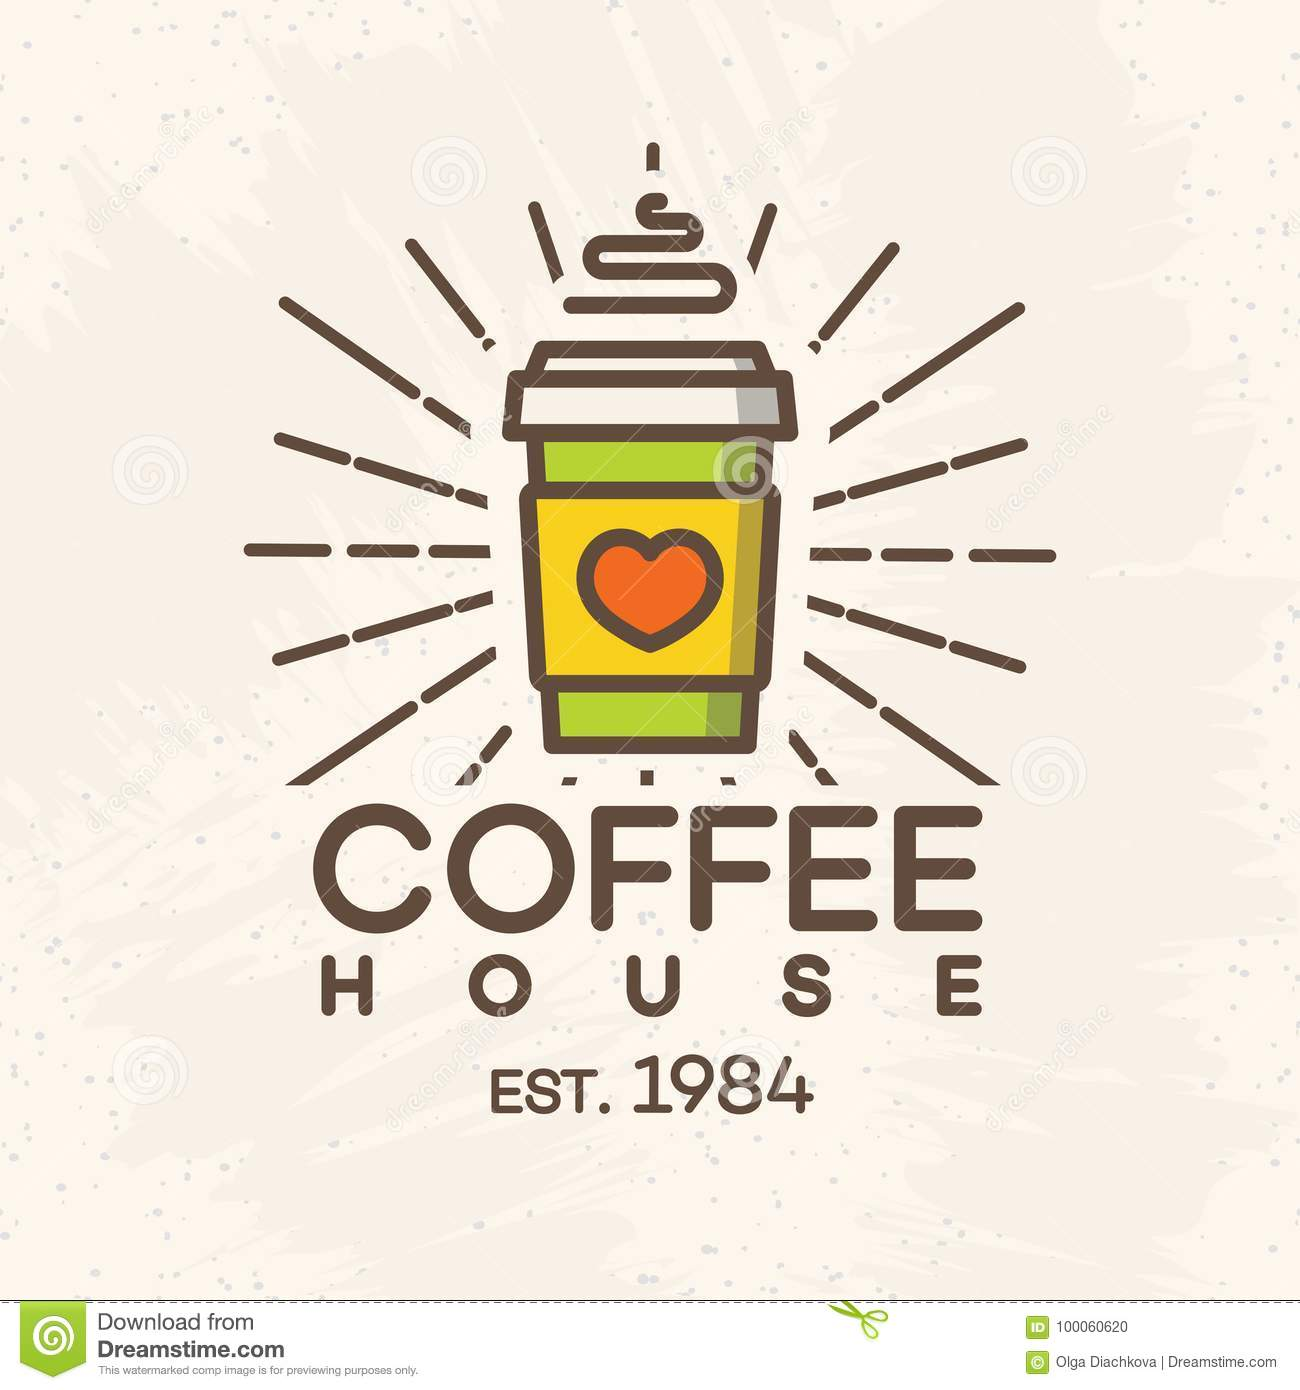 coffee house logo with paper cup of coffee color style isolated on